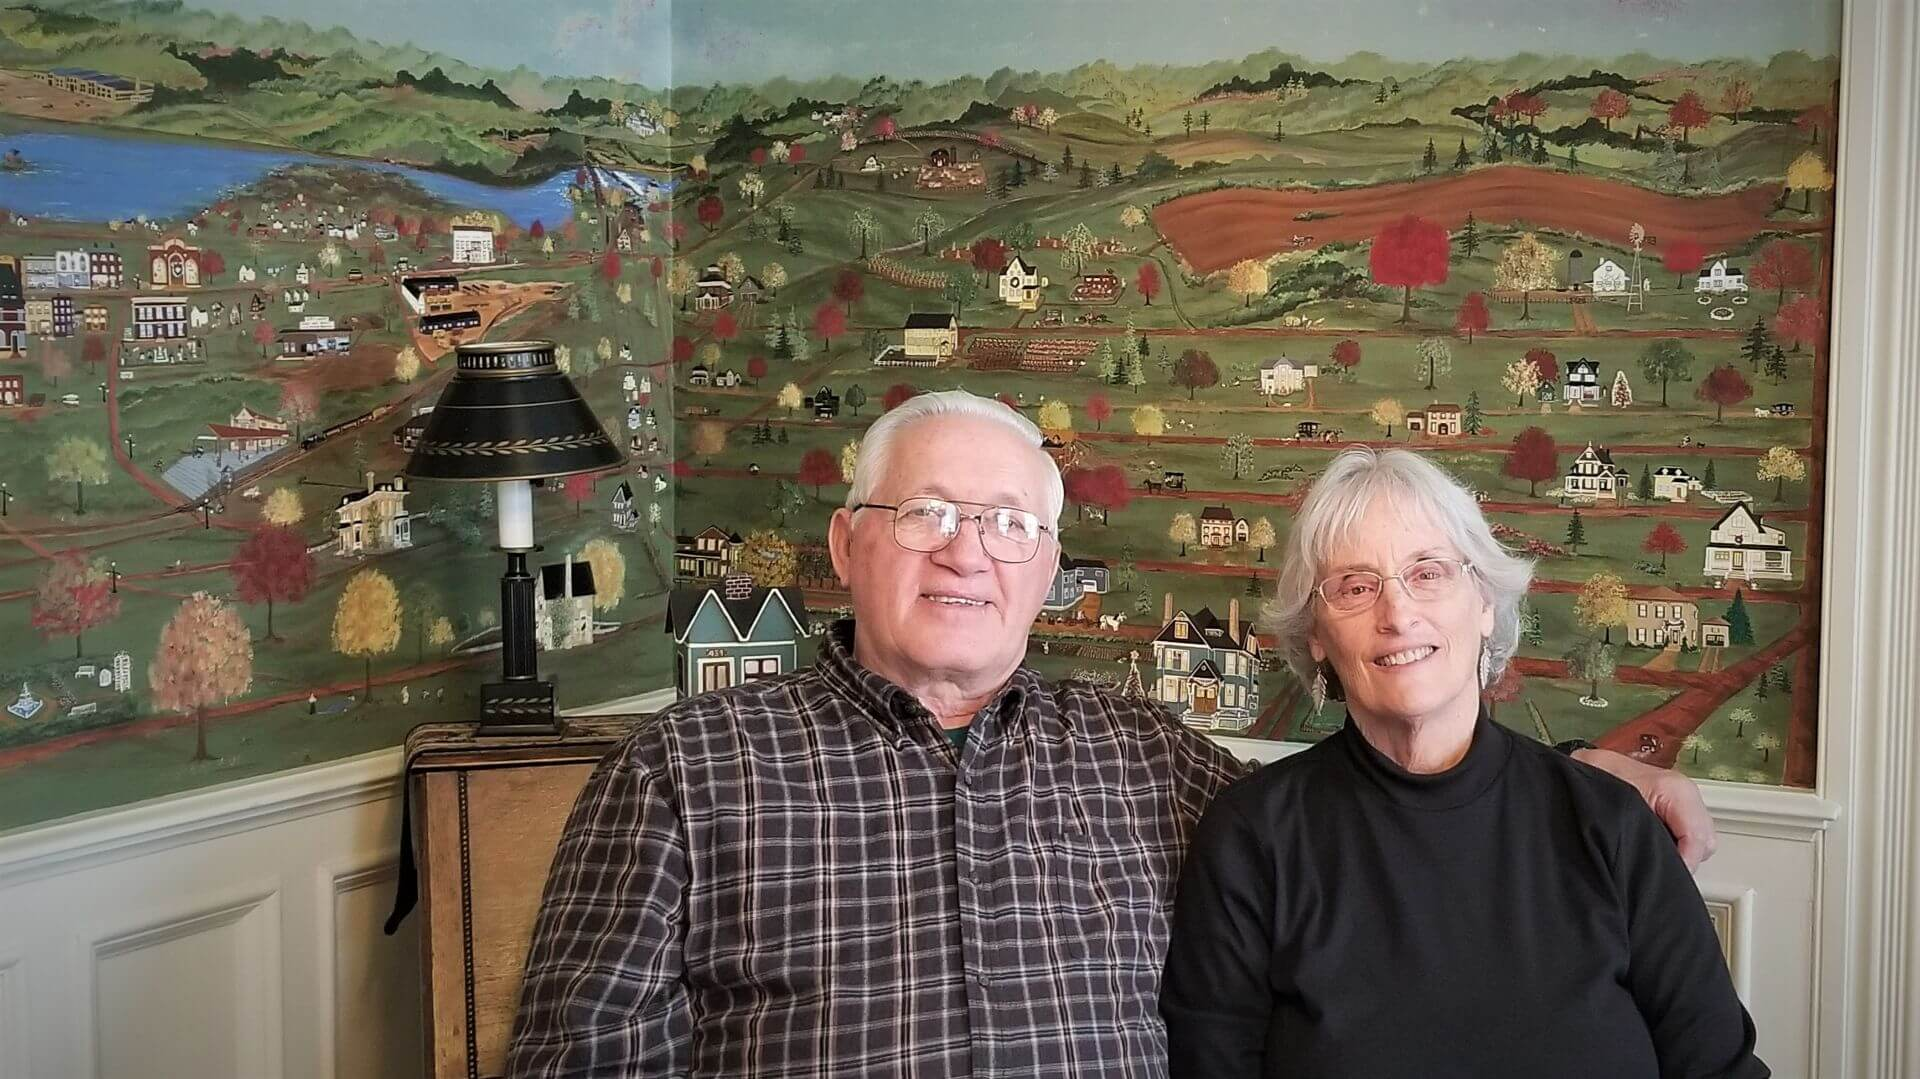 Ron and Margaret Delaney in front of the mural of Janesville